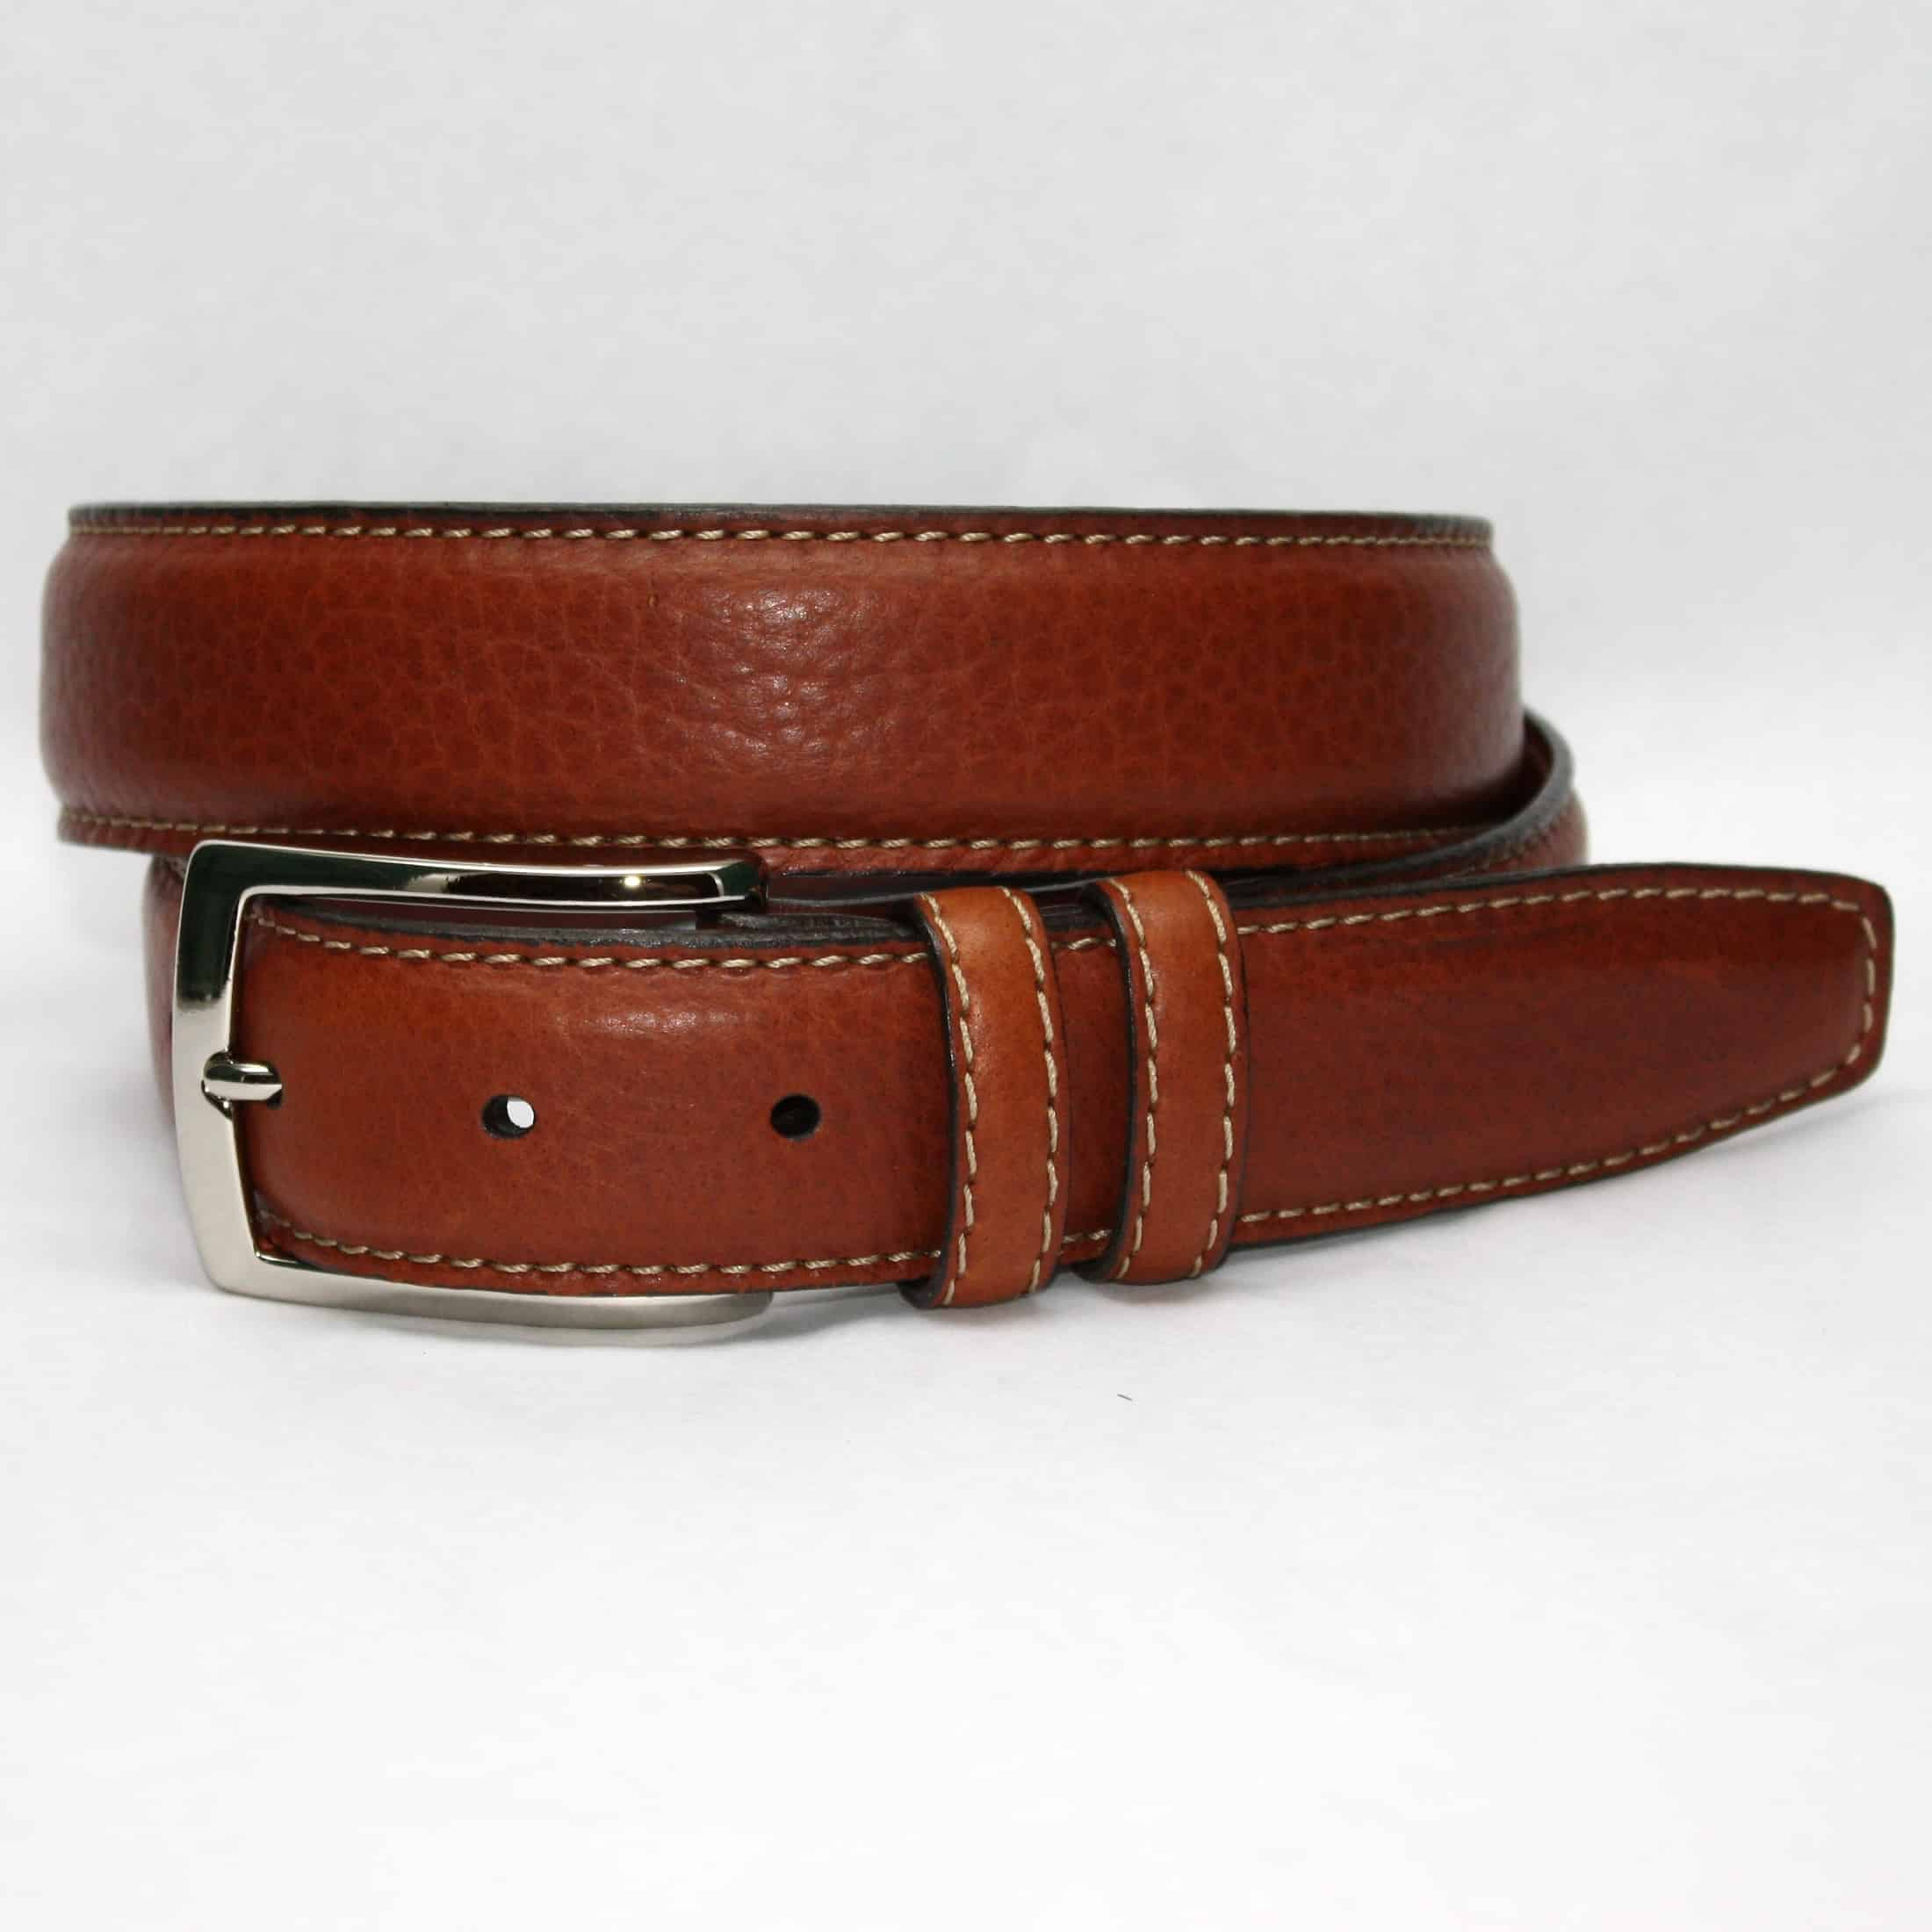 Genuine American Bison Leather Belt - Tan,BELT,Gent Row, | GentRow.com